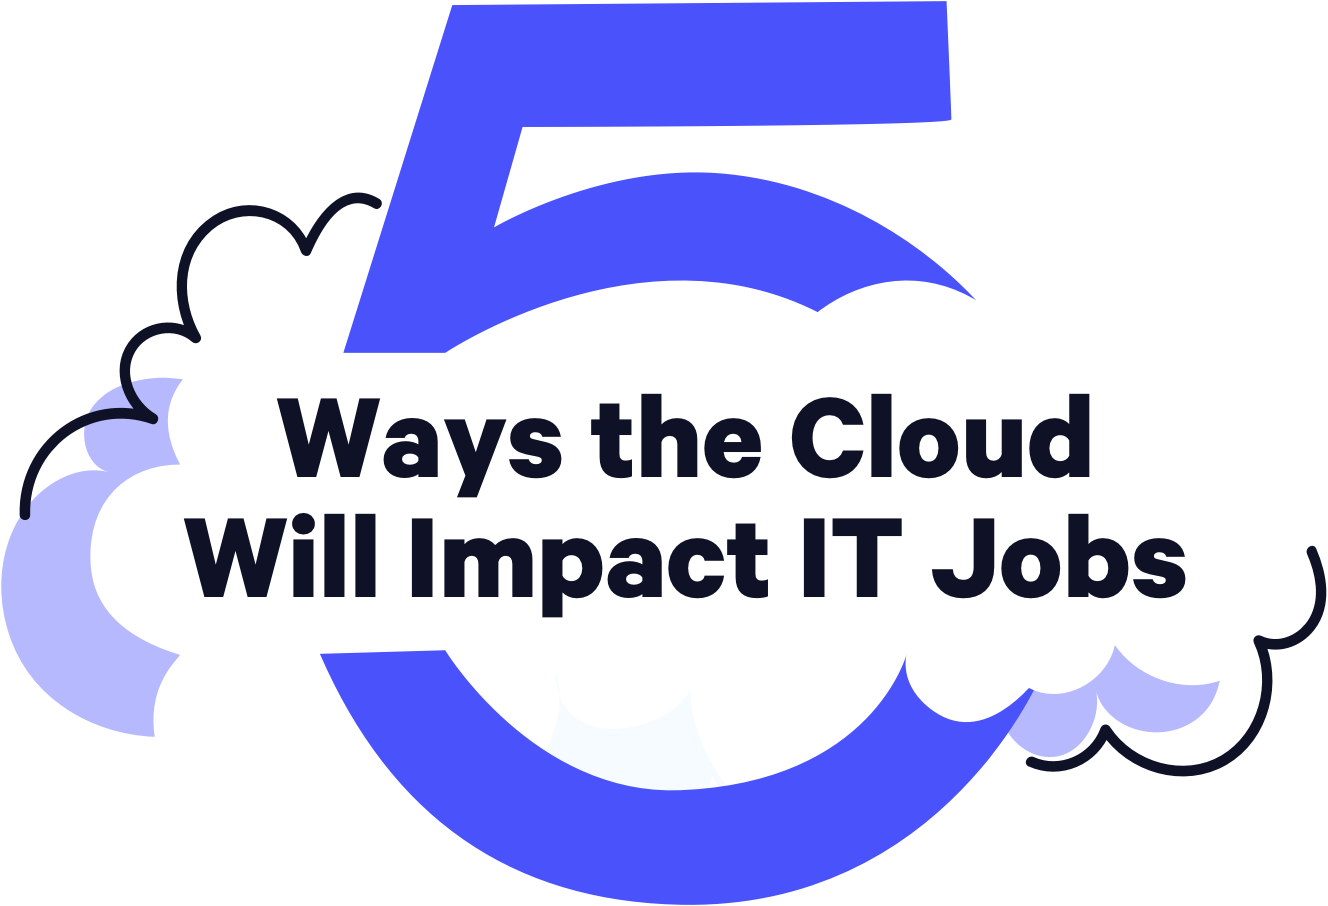 Five Ways the Cloud Will Impact It Jobs